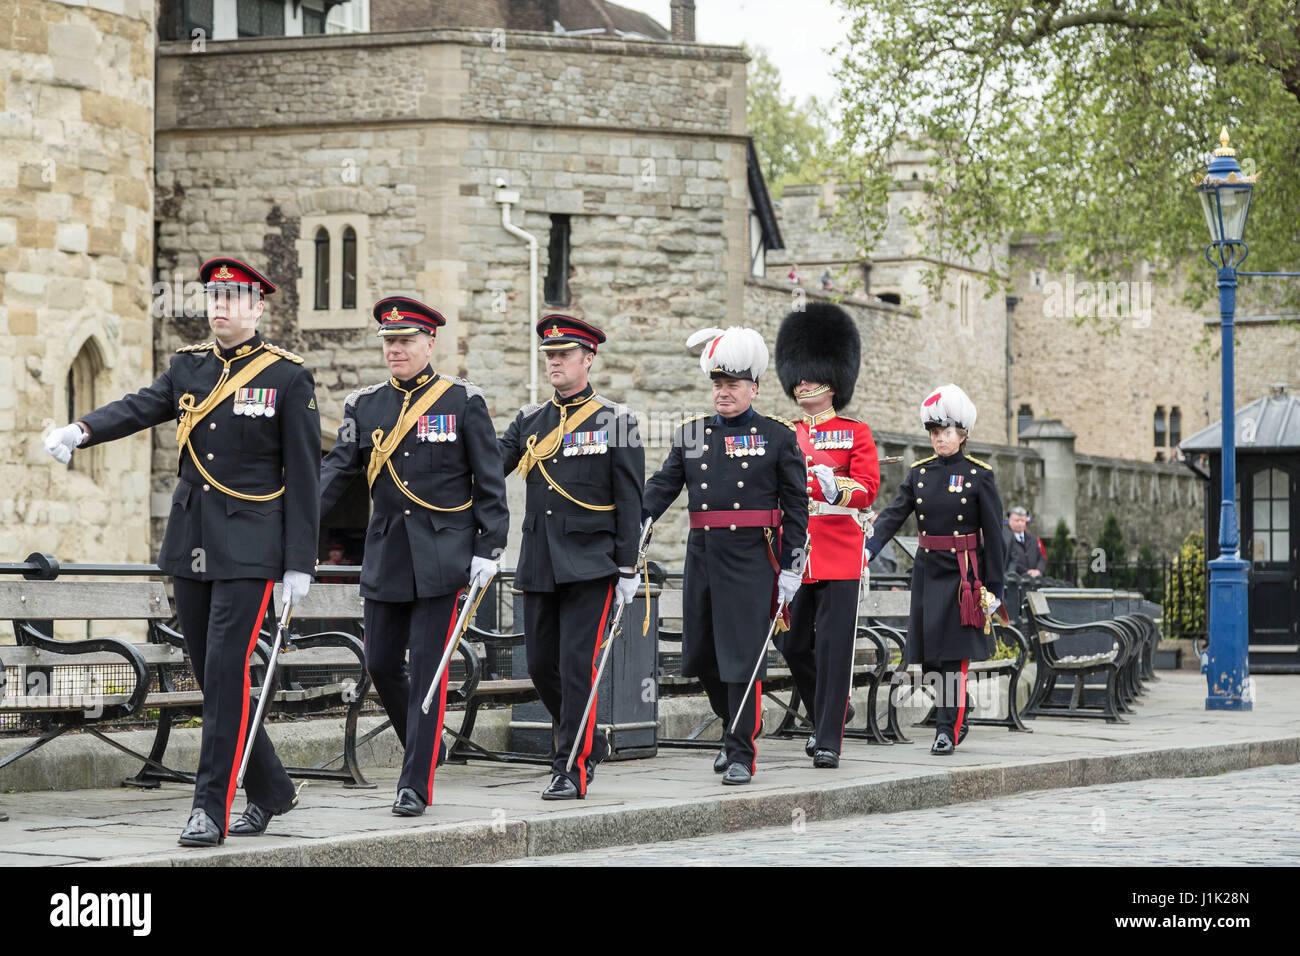 Londres, Royaume-Uni. 21 avril, 2017. 62 coups d'artillerie tiré par l'Honorable Artillery Company Photo Stock